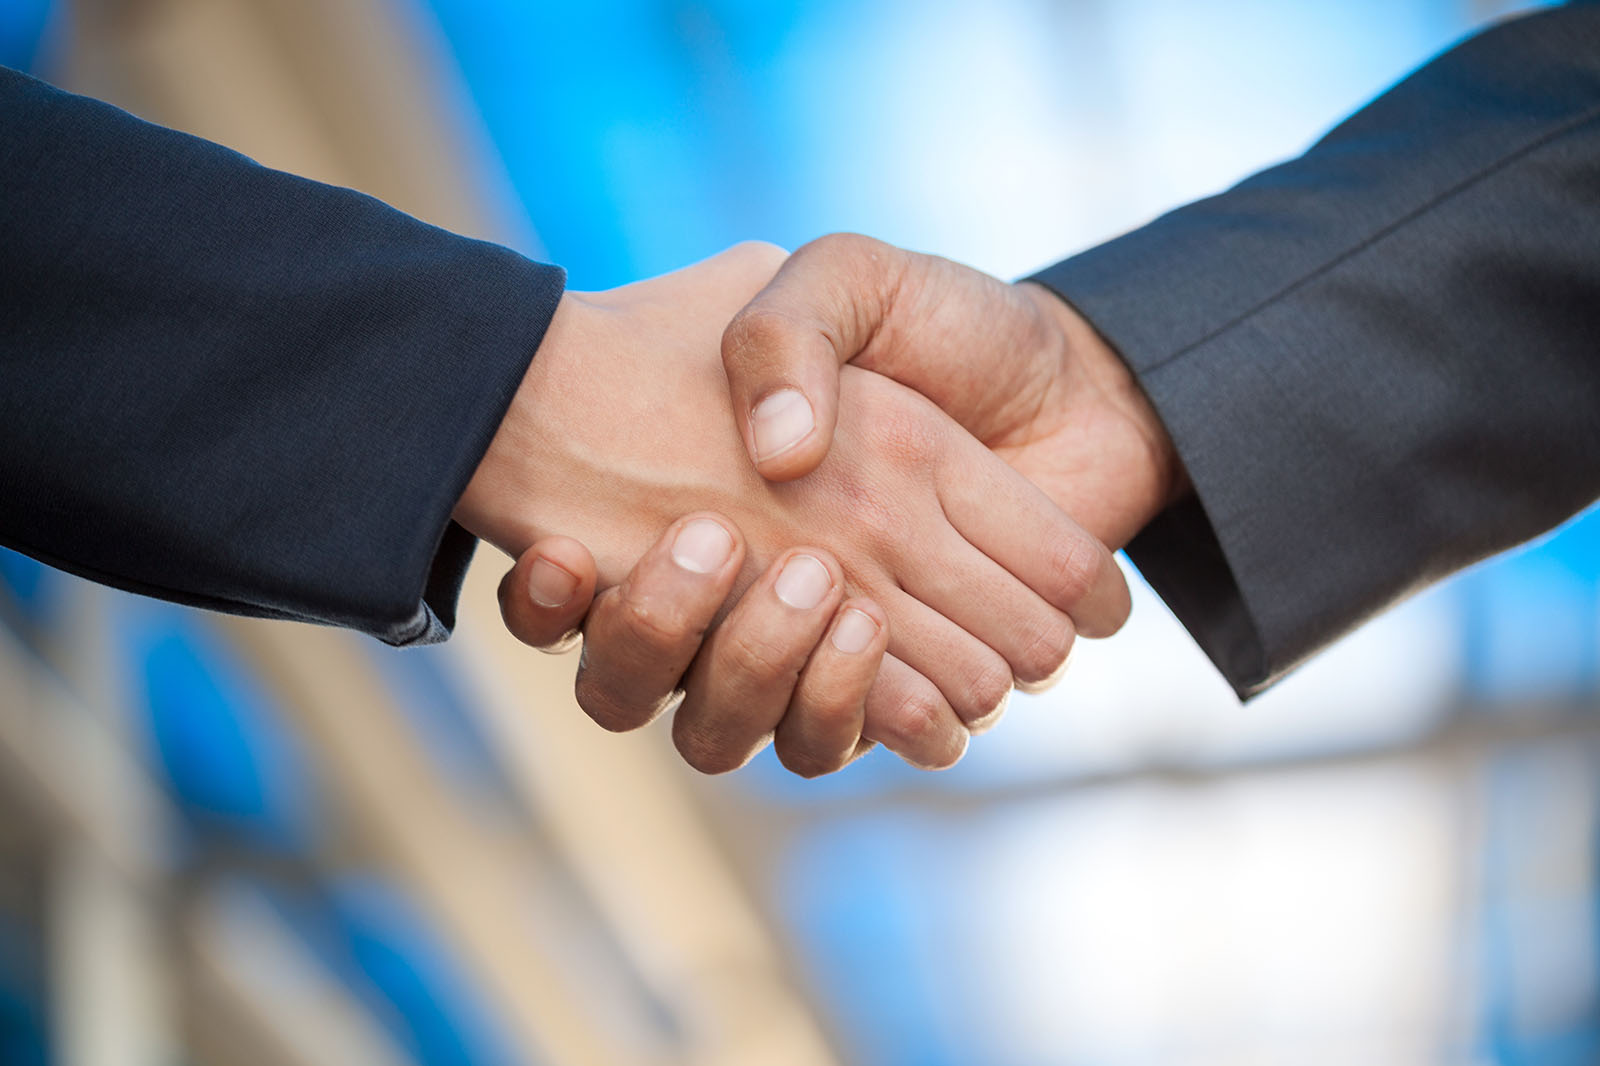 hand business men and women who shaking hands